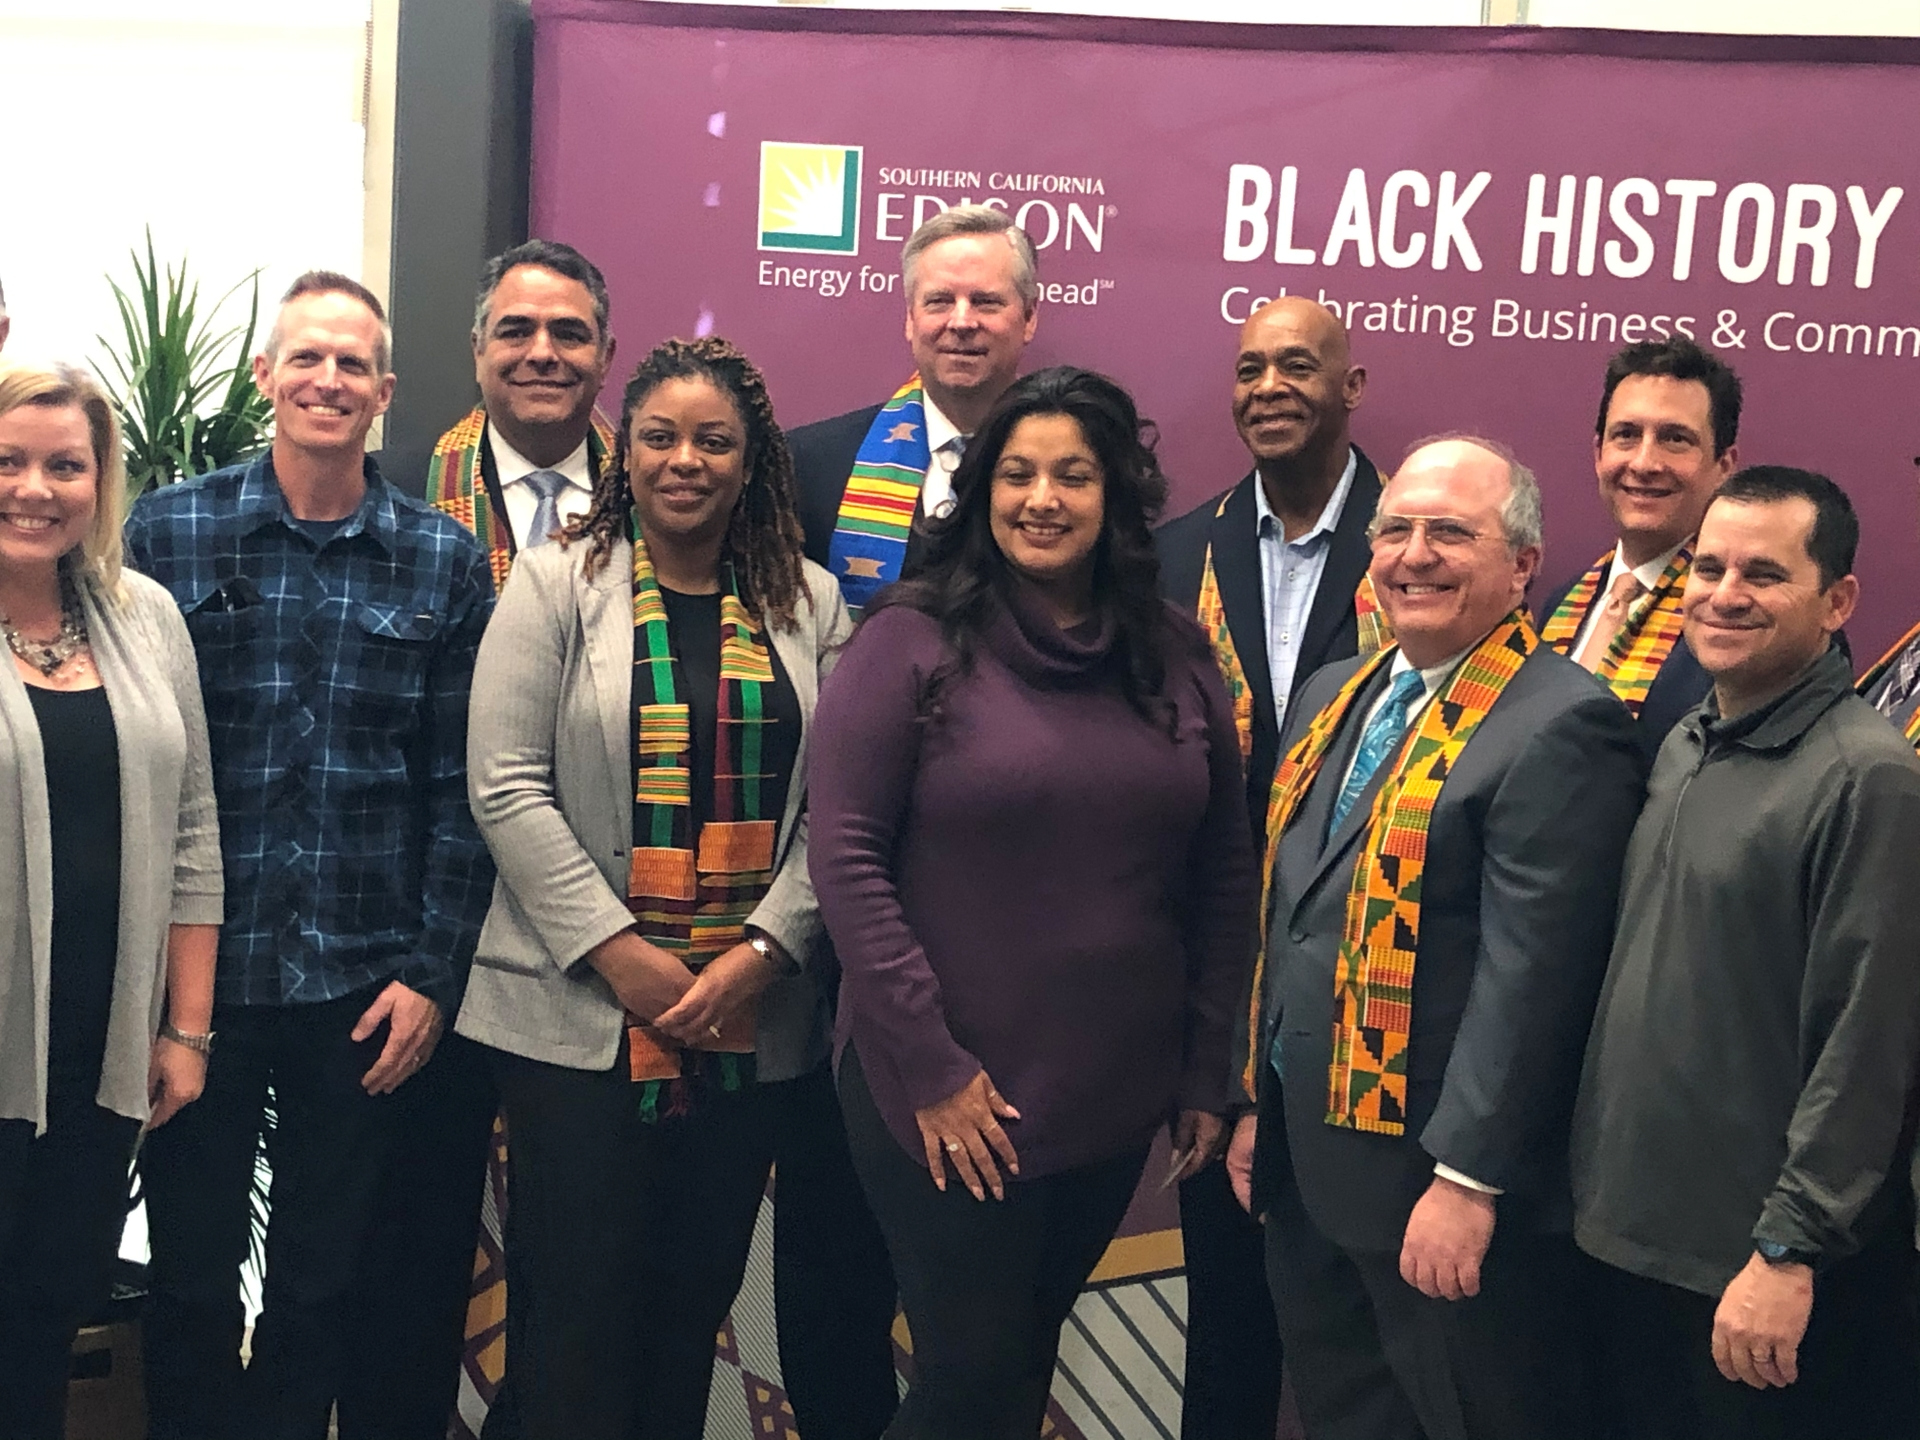 Attendees at SCE's recent Black History Month celebration in Tulare included Kevin Payne, SCE president and CEO (fifth from left) and Carla Peterman, SCE senior vice president, Regulatory Affairs (fourth from left).